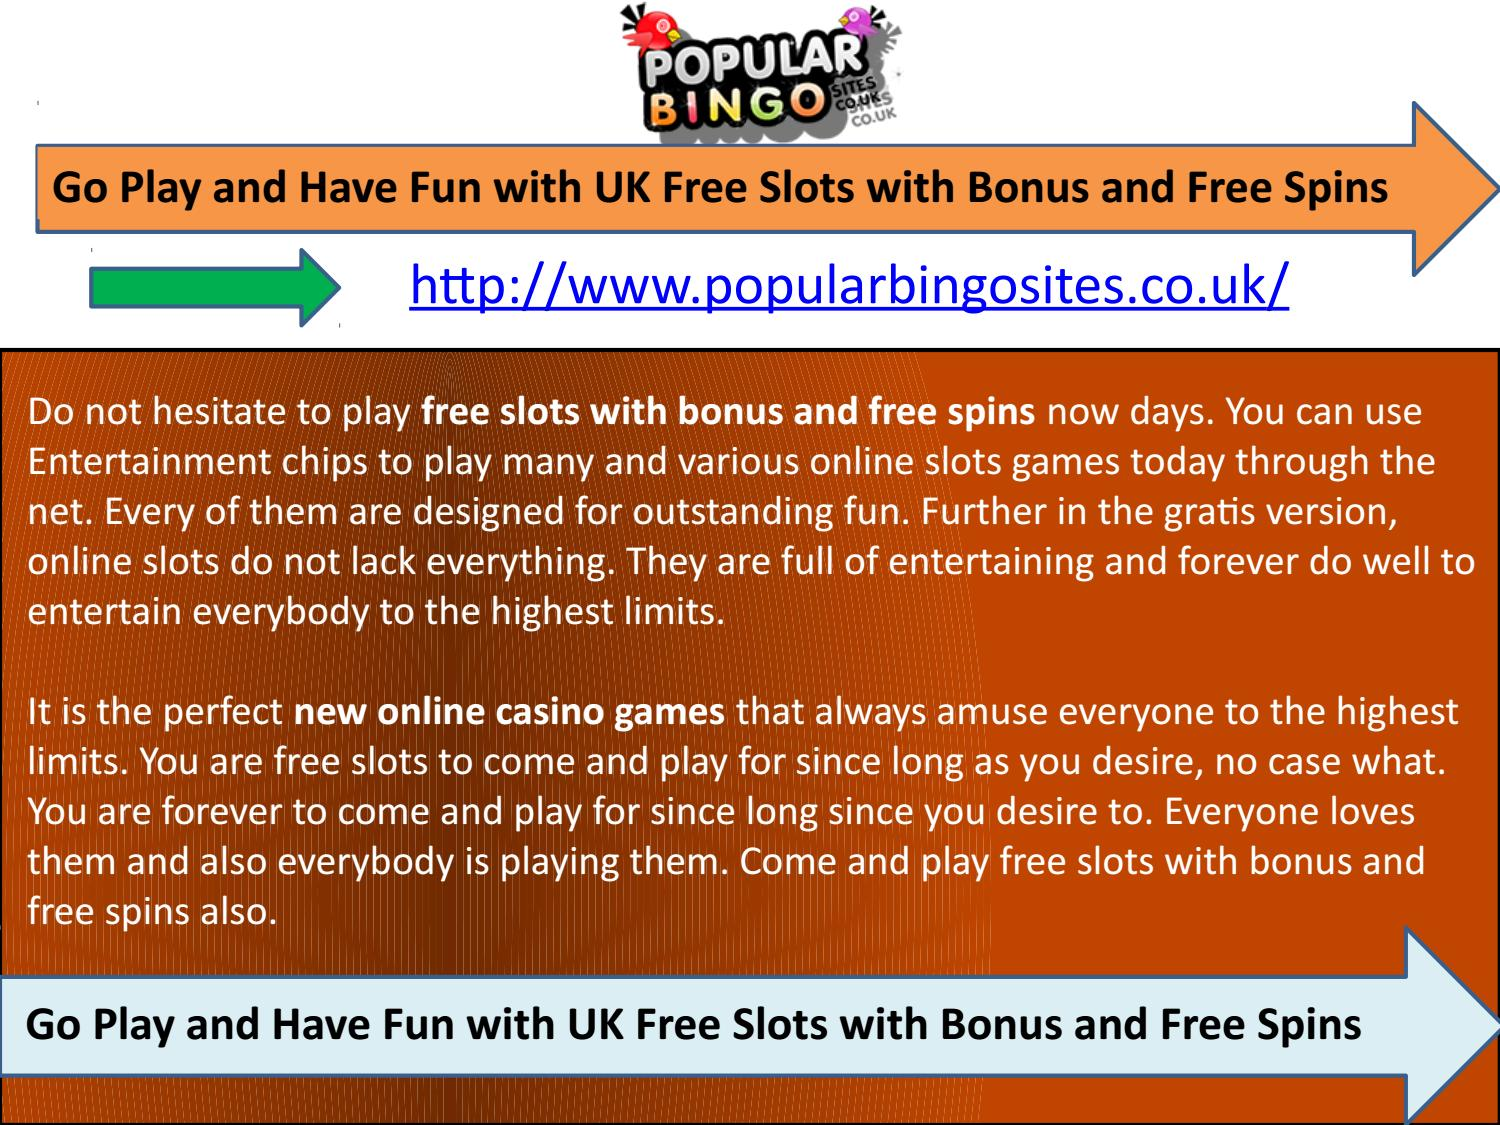 Go Play And Have Fun With Uk Free Slots With Bonus And Free Spins